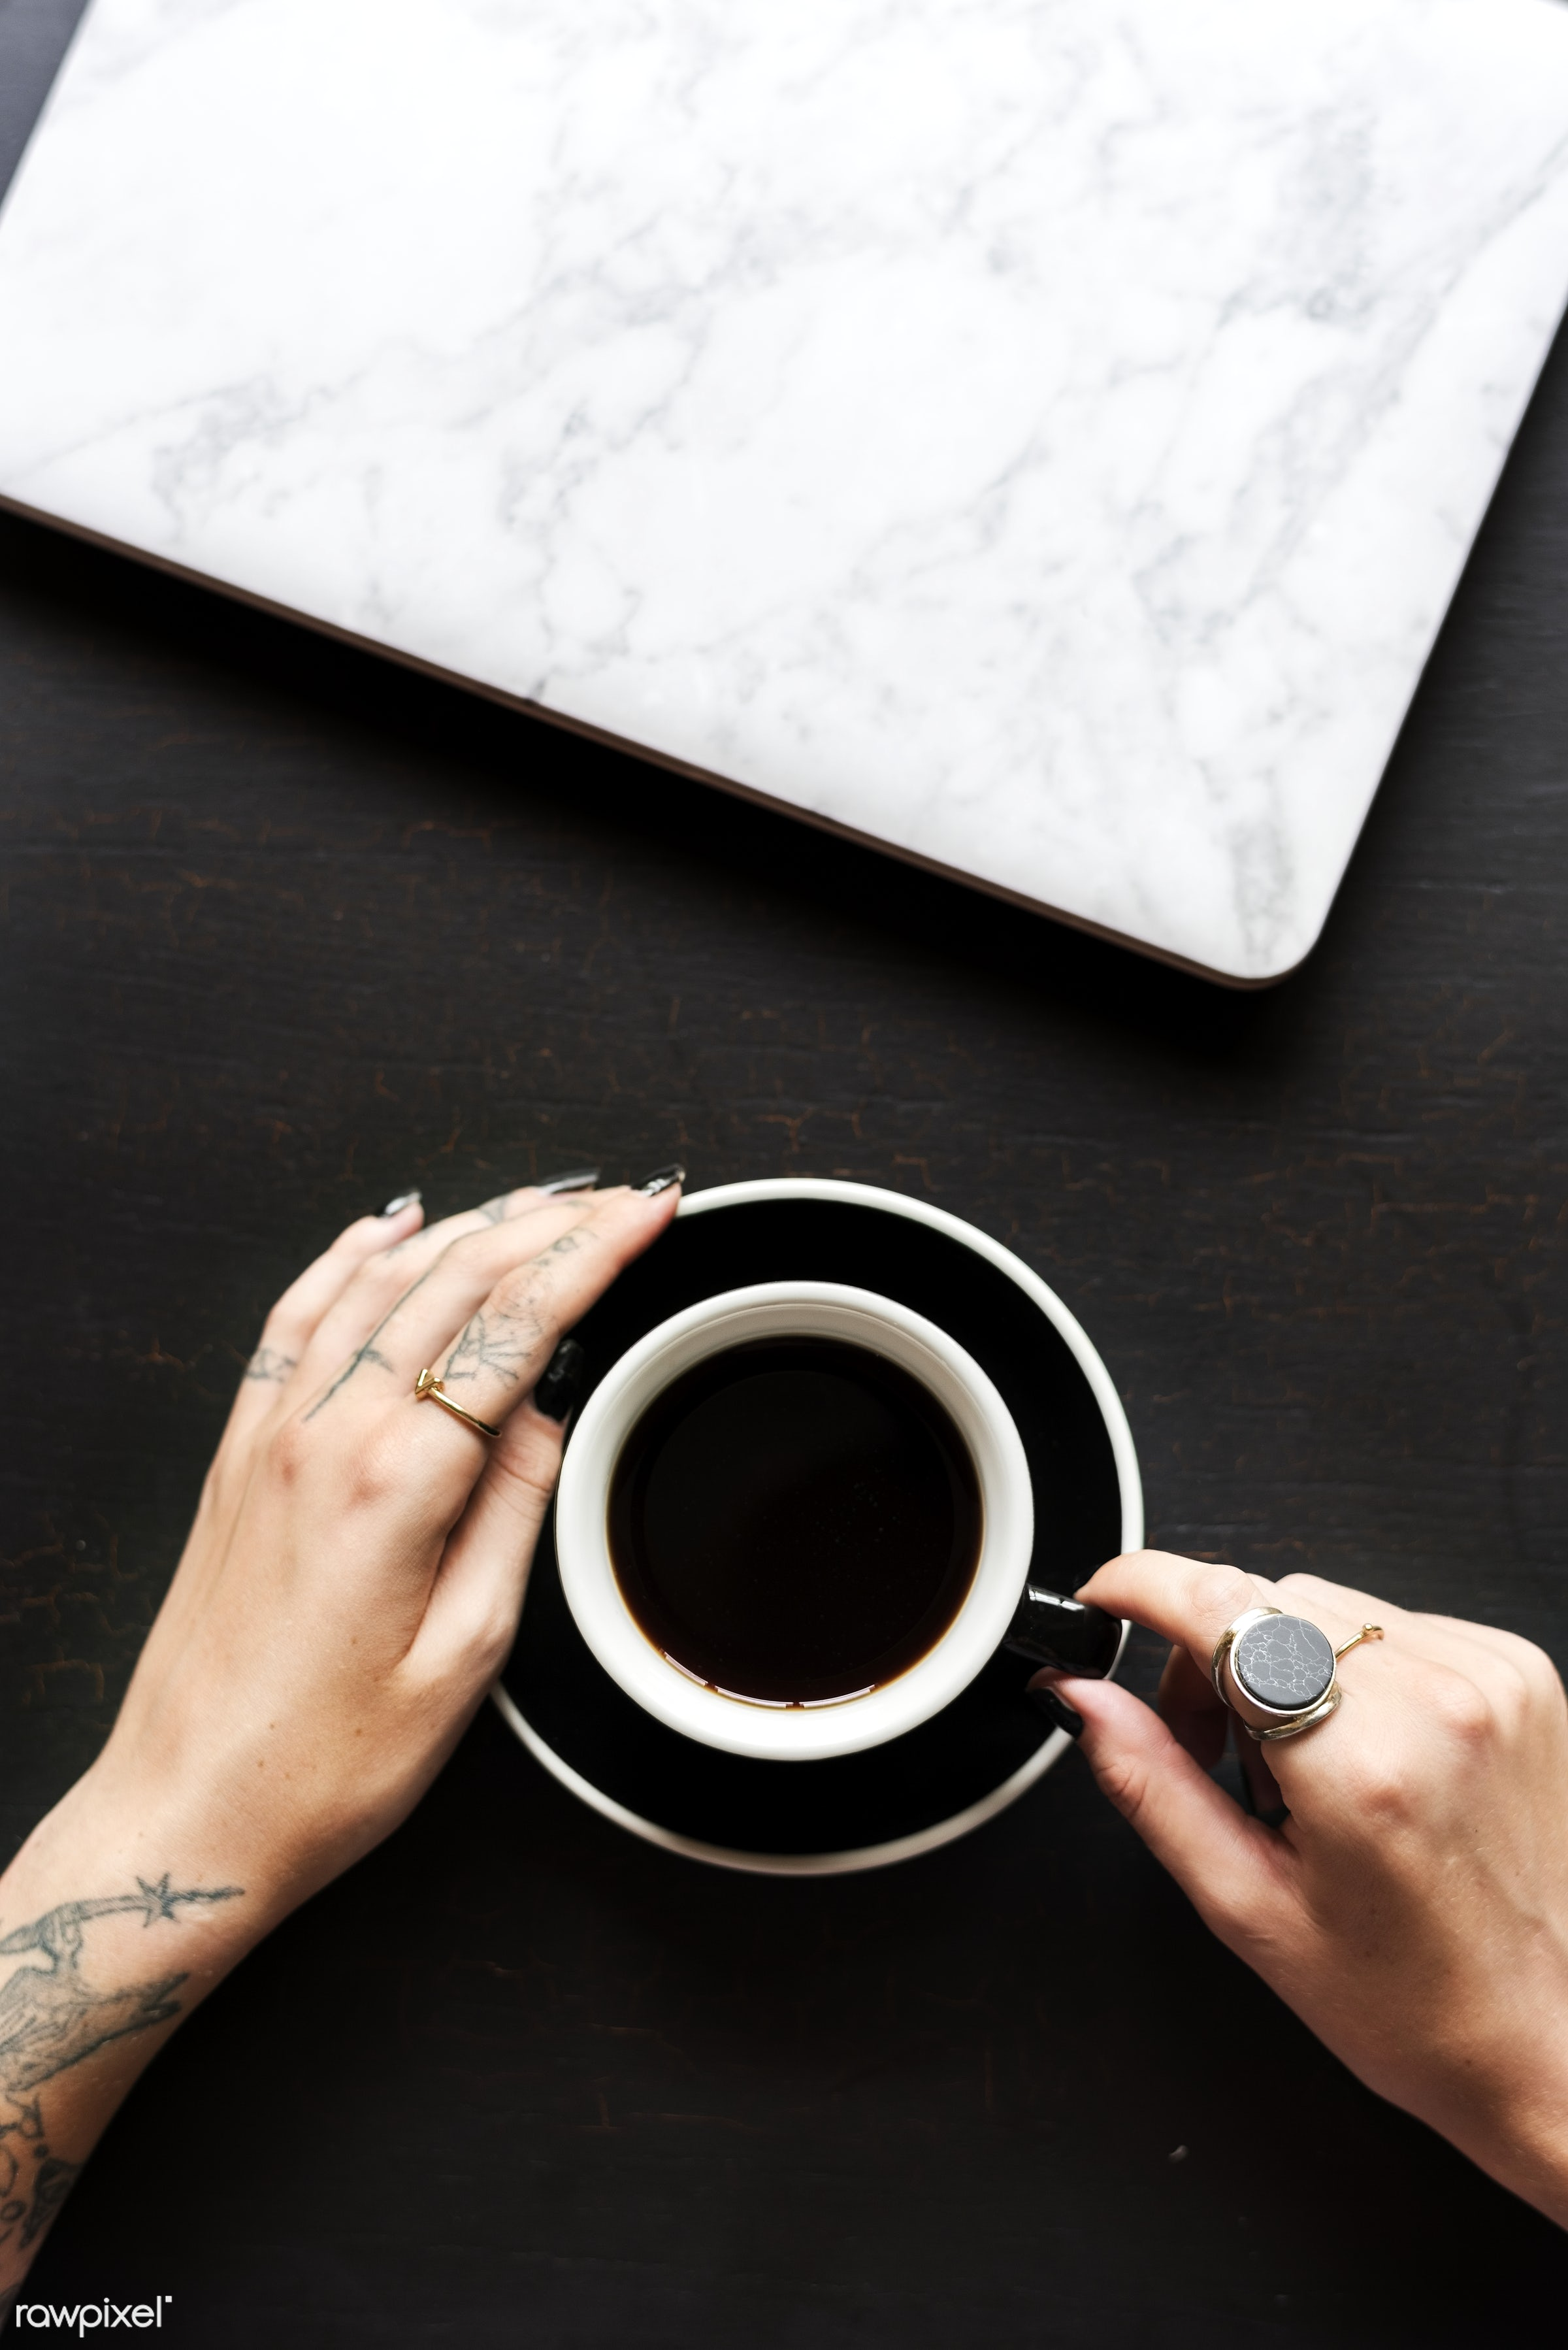 cup, marble, person, caffeine, relax, show, people, hand, break, life, style, hands, drink, lifestyle, laptop, tattoo,...